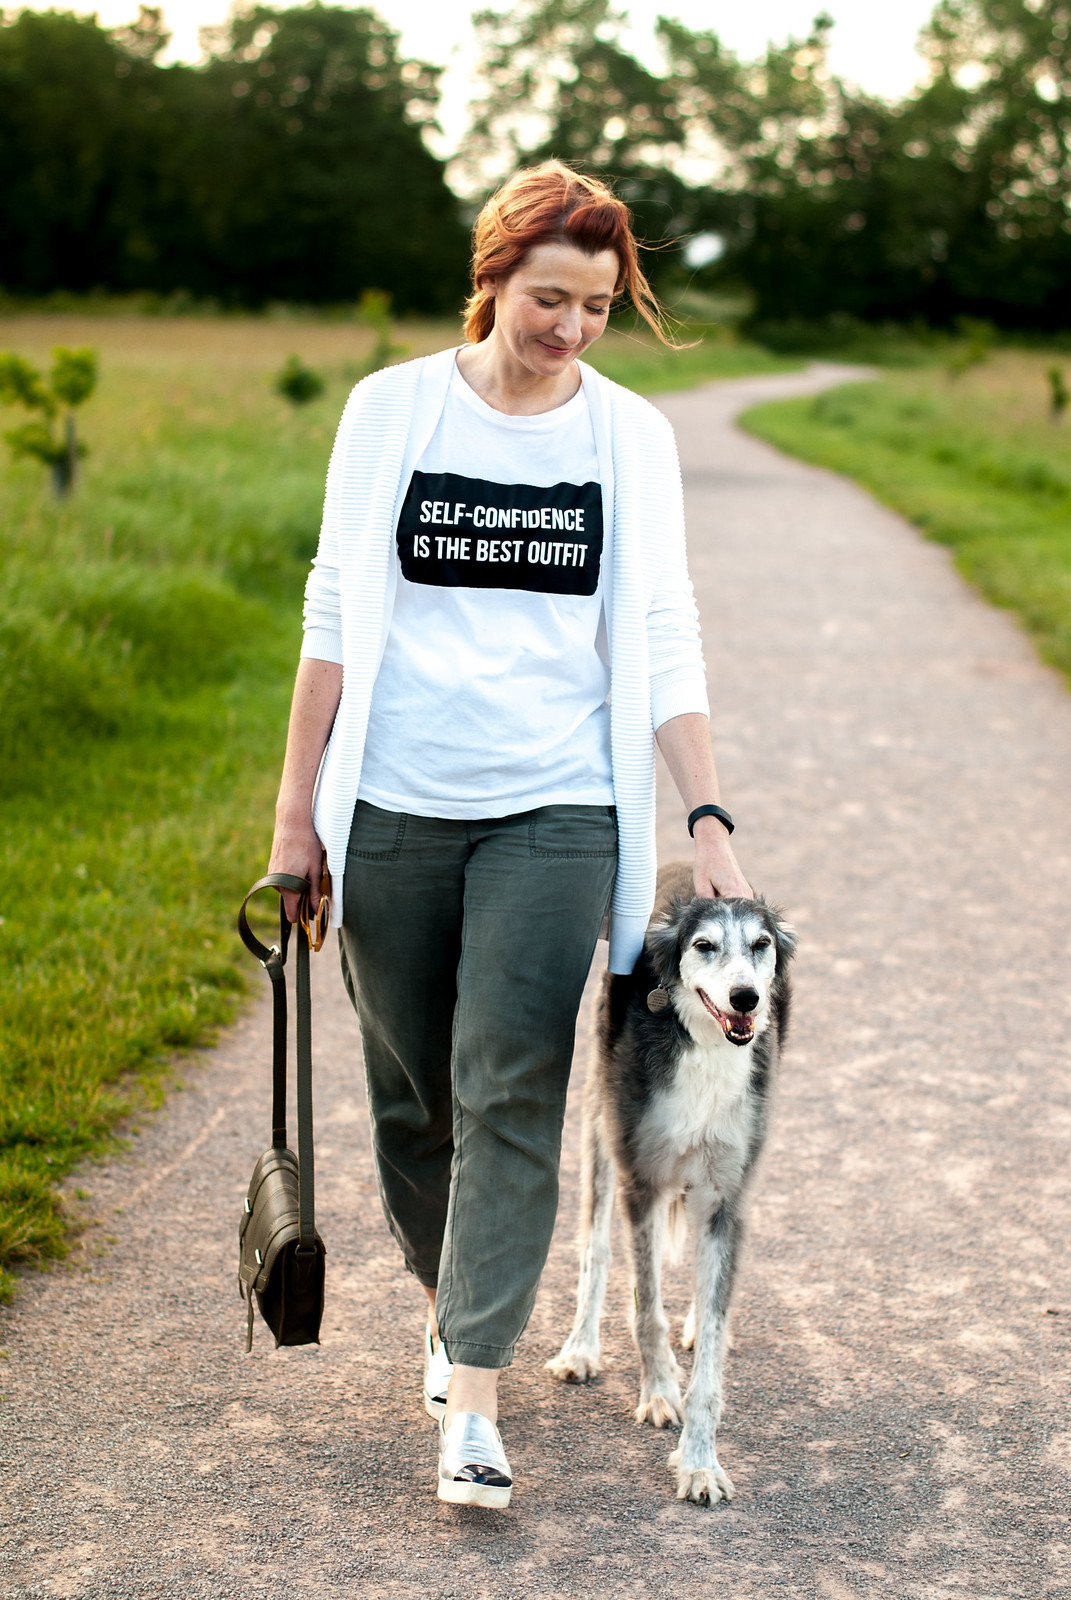 Super casual walking the dog outfit: Self-confidence is the best outfit t-shirt, khaki joggers, silver slip on shoes | Not Dressed As Lamb, over 40 style